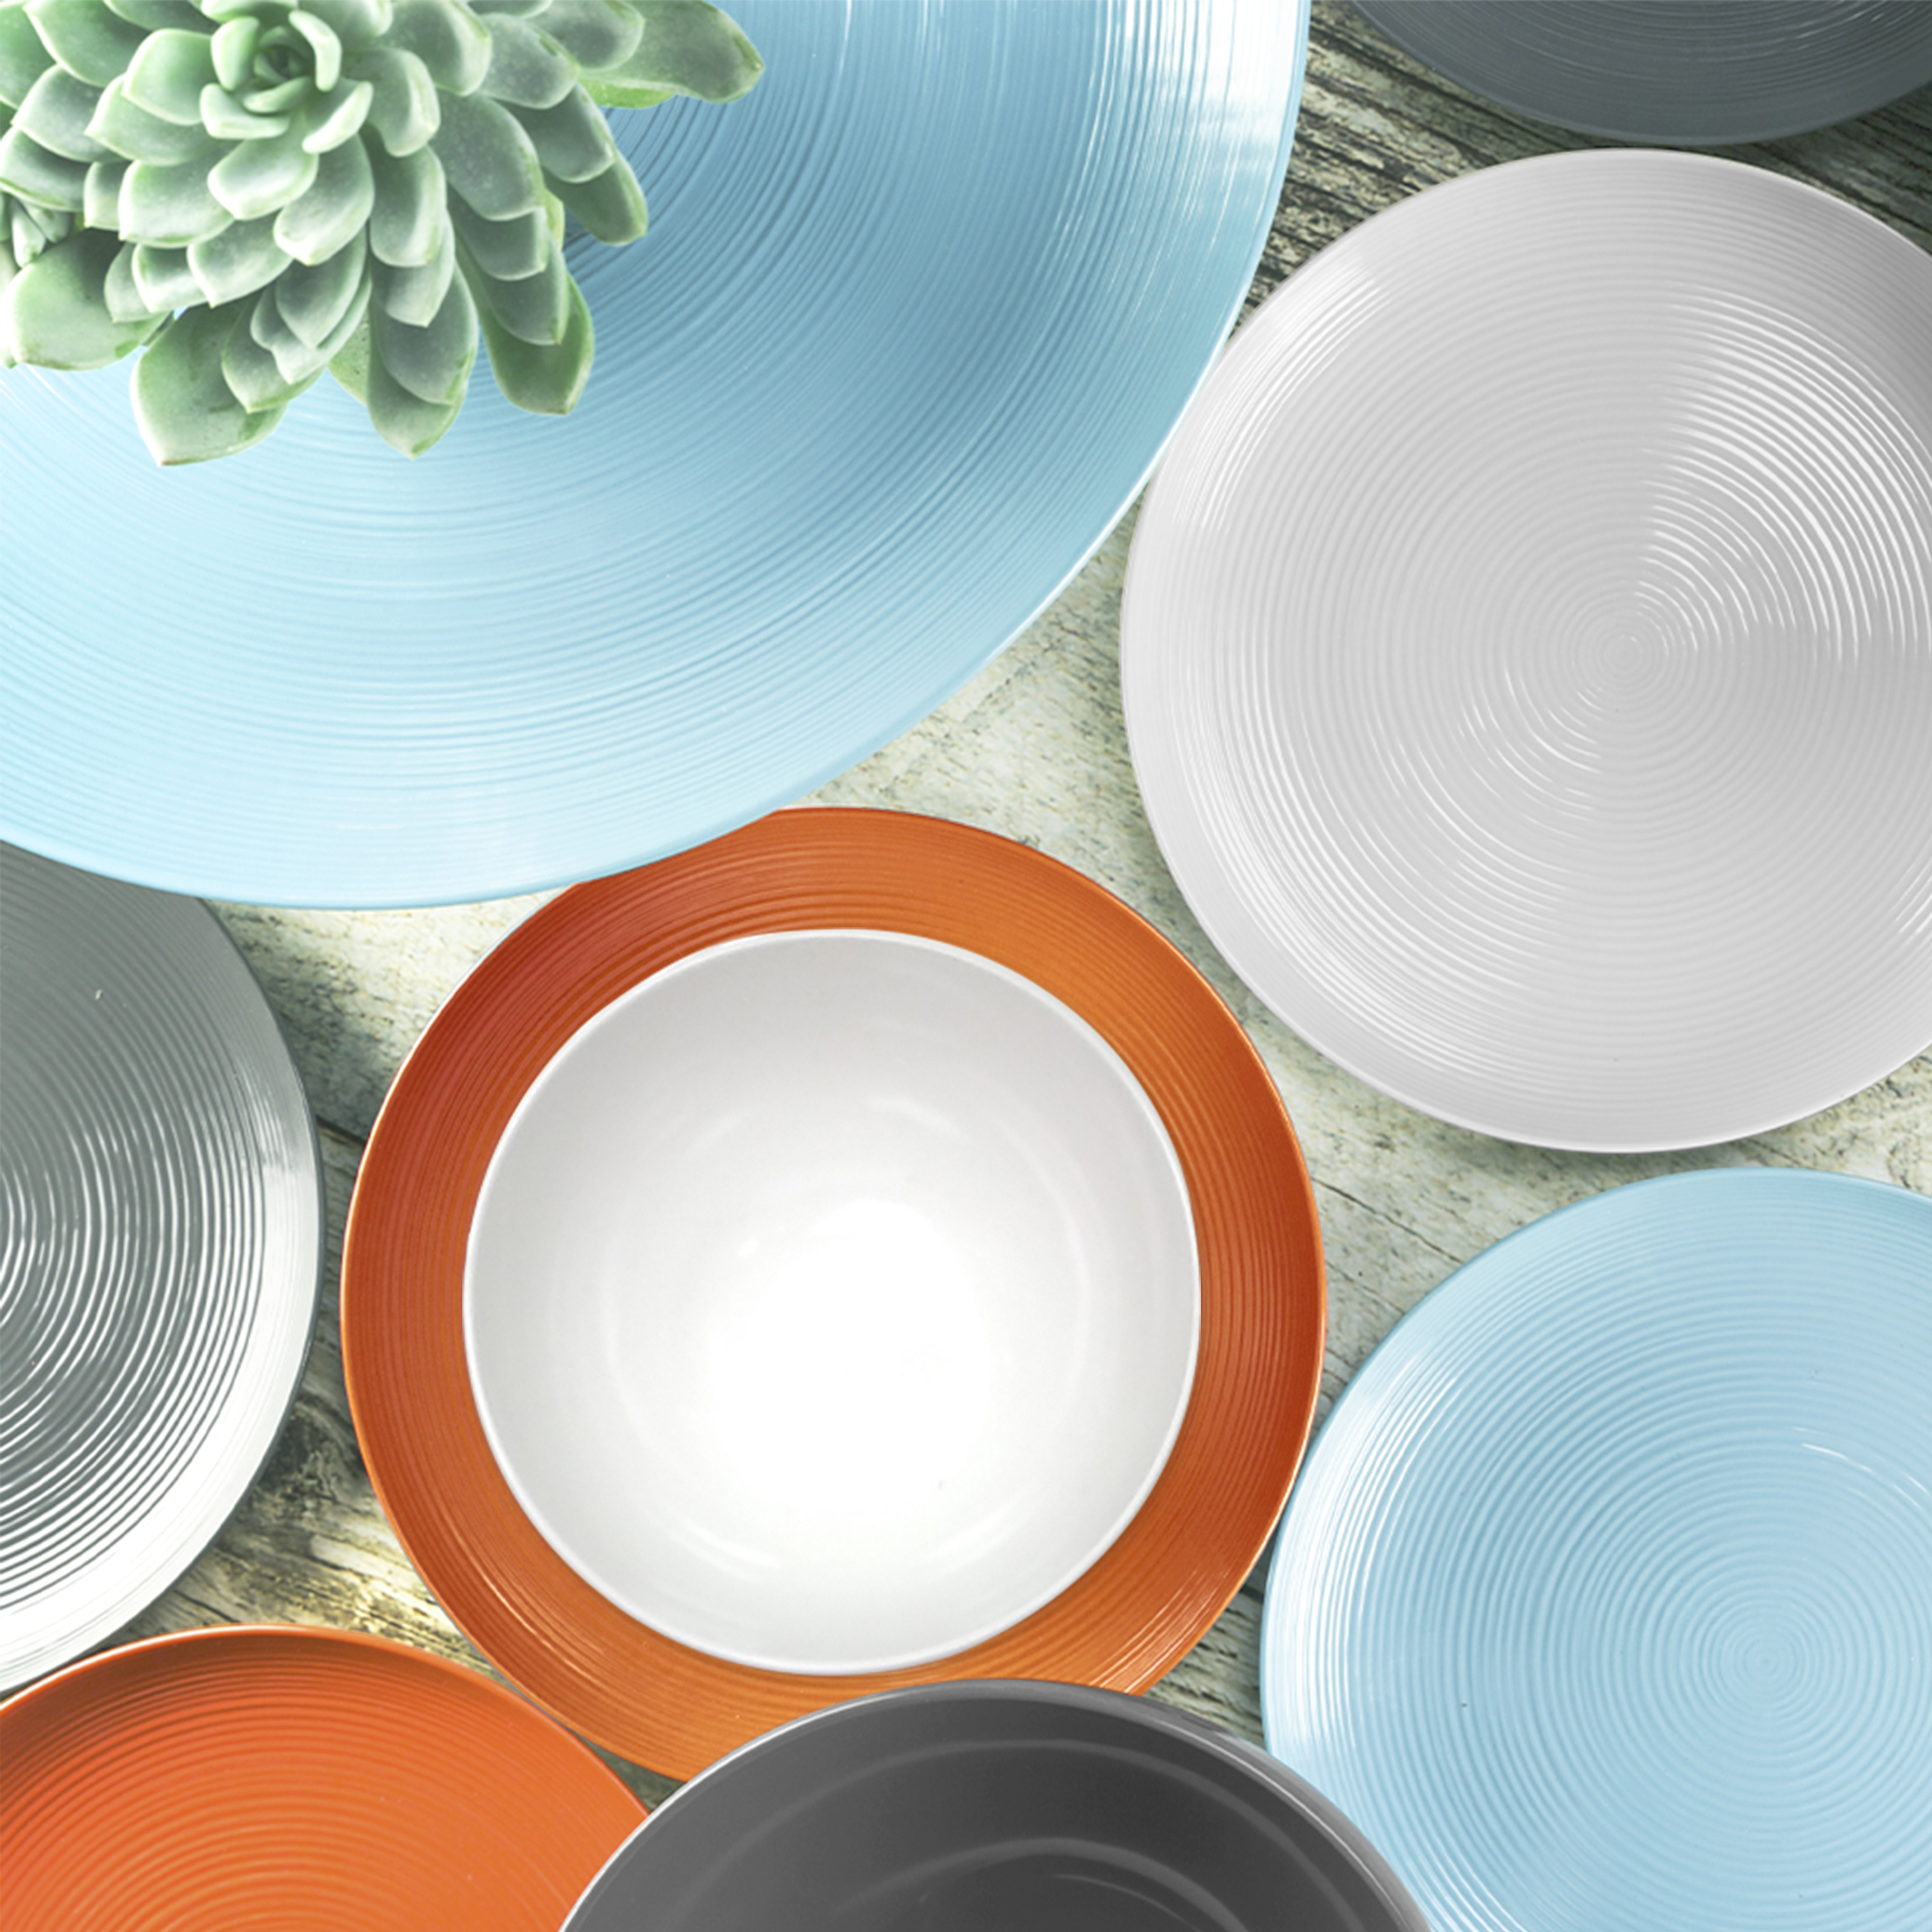 American Conventional Plate & Bowl Sets, Orange, 12-piece set slideshow image 11